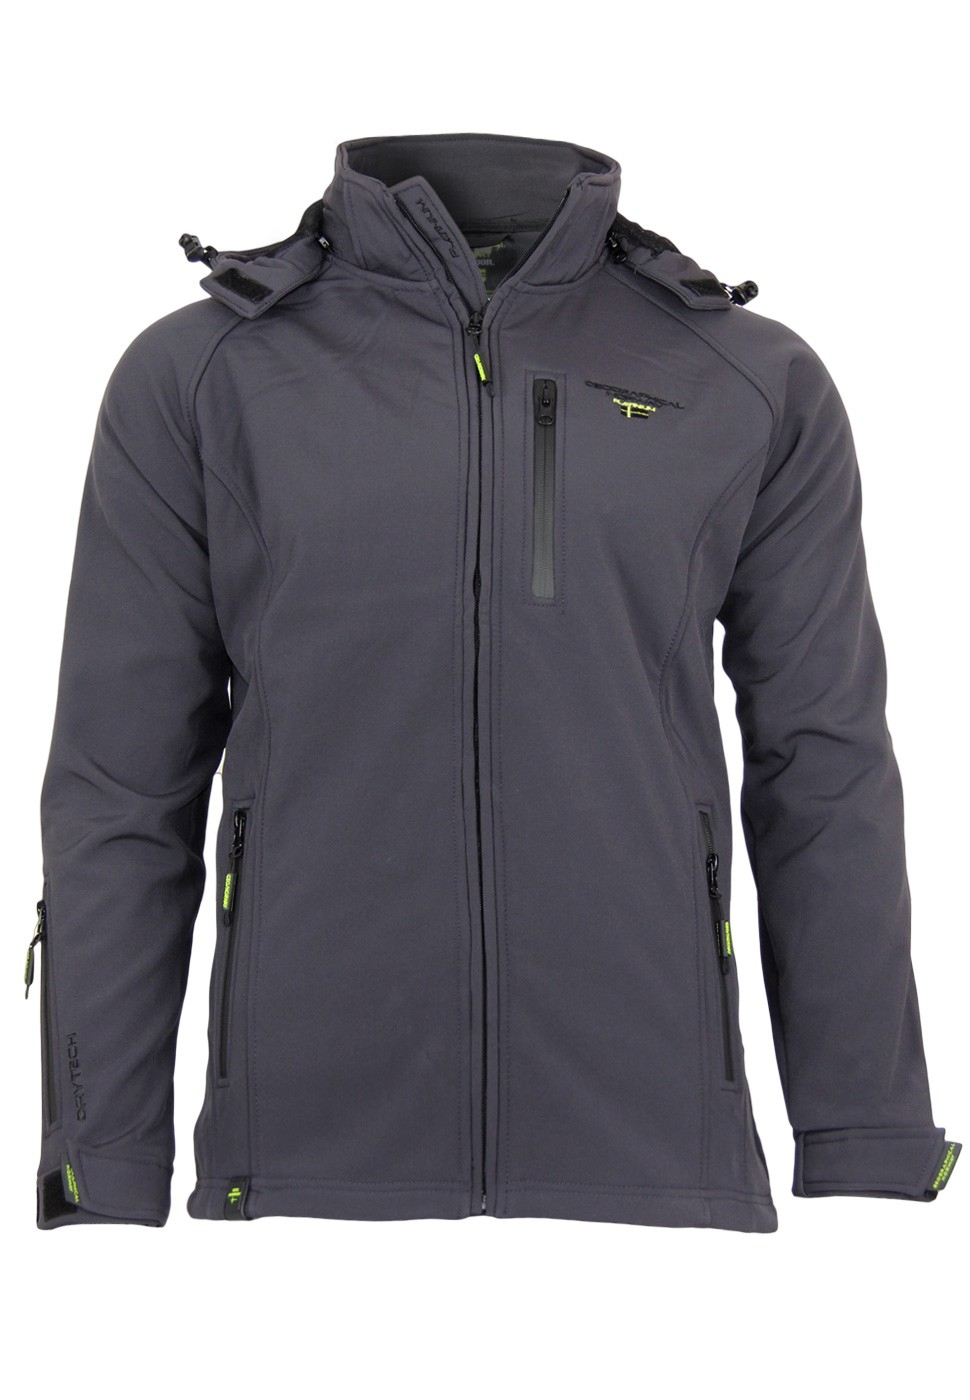 geographical norway softshell jacket tony hood men size s m l xl xxl 3xl ebay. Black Bedroom Furniture Sets. Home Design Ideas